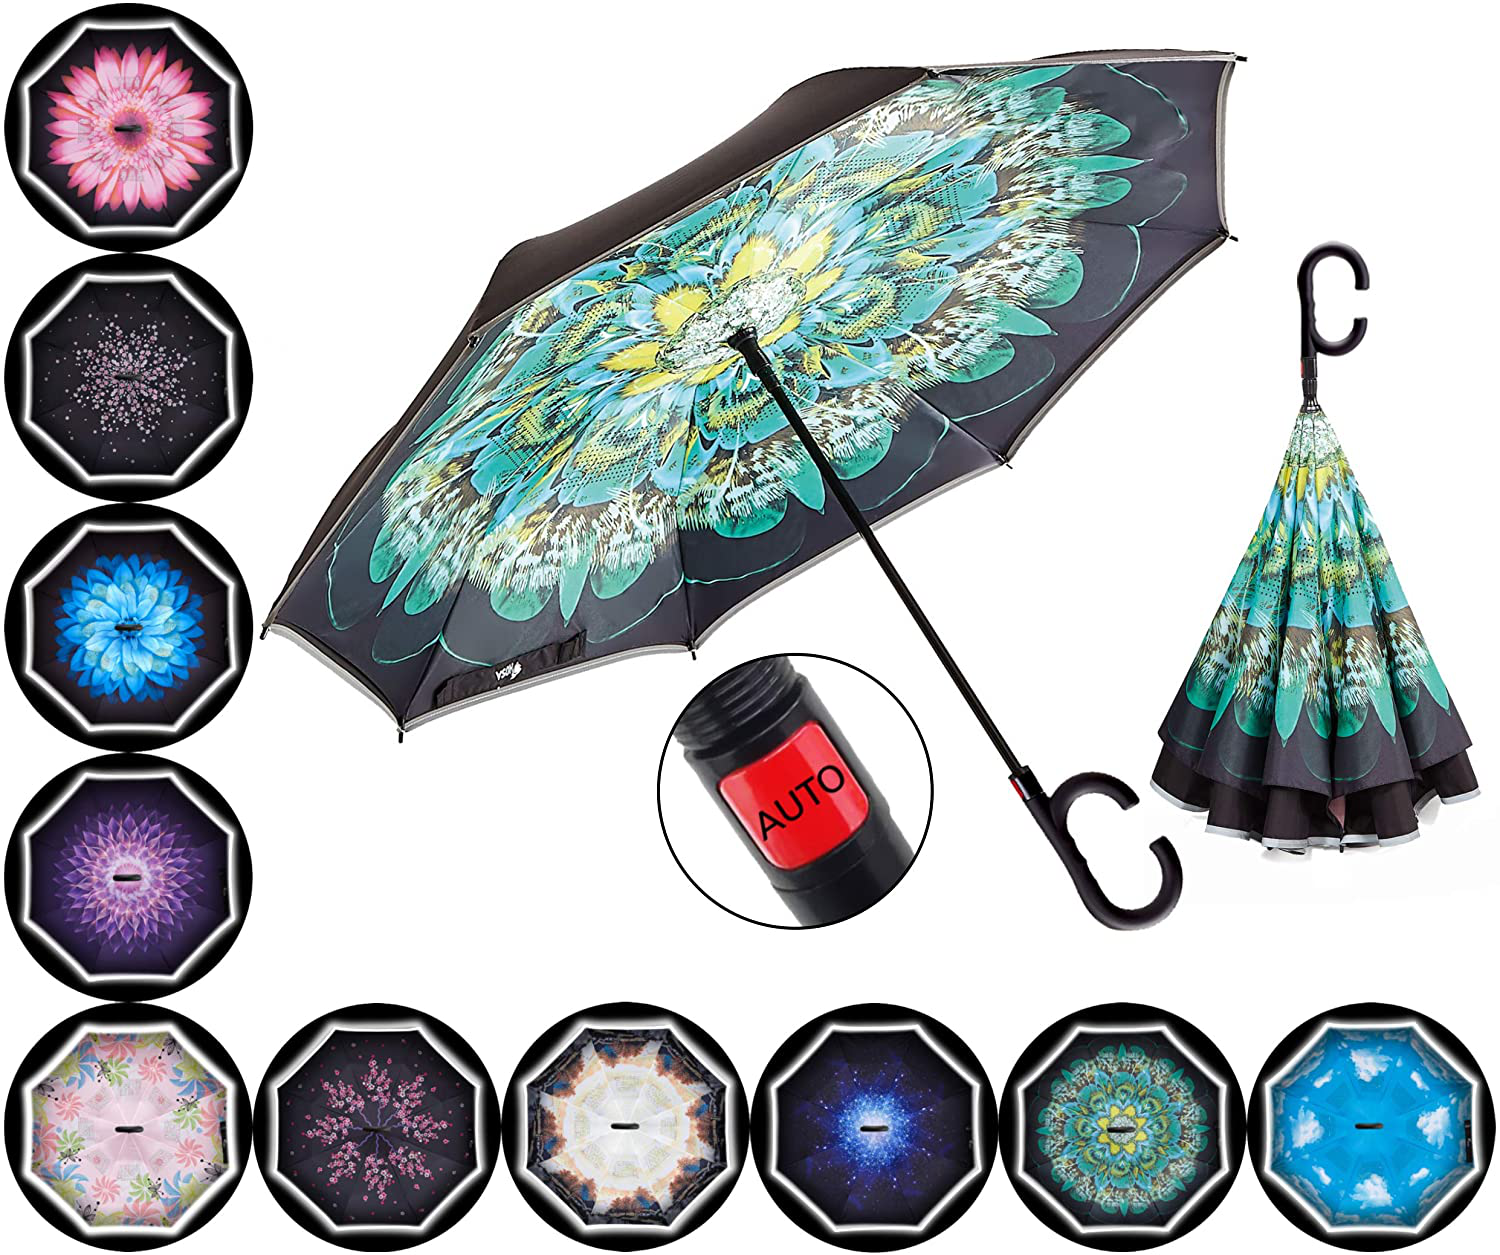 HOSA Auto Open Reverse Inverted Umbrella   Night Safety Reflective Strips, Doubl